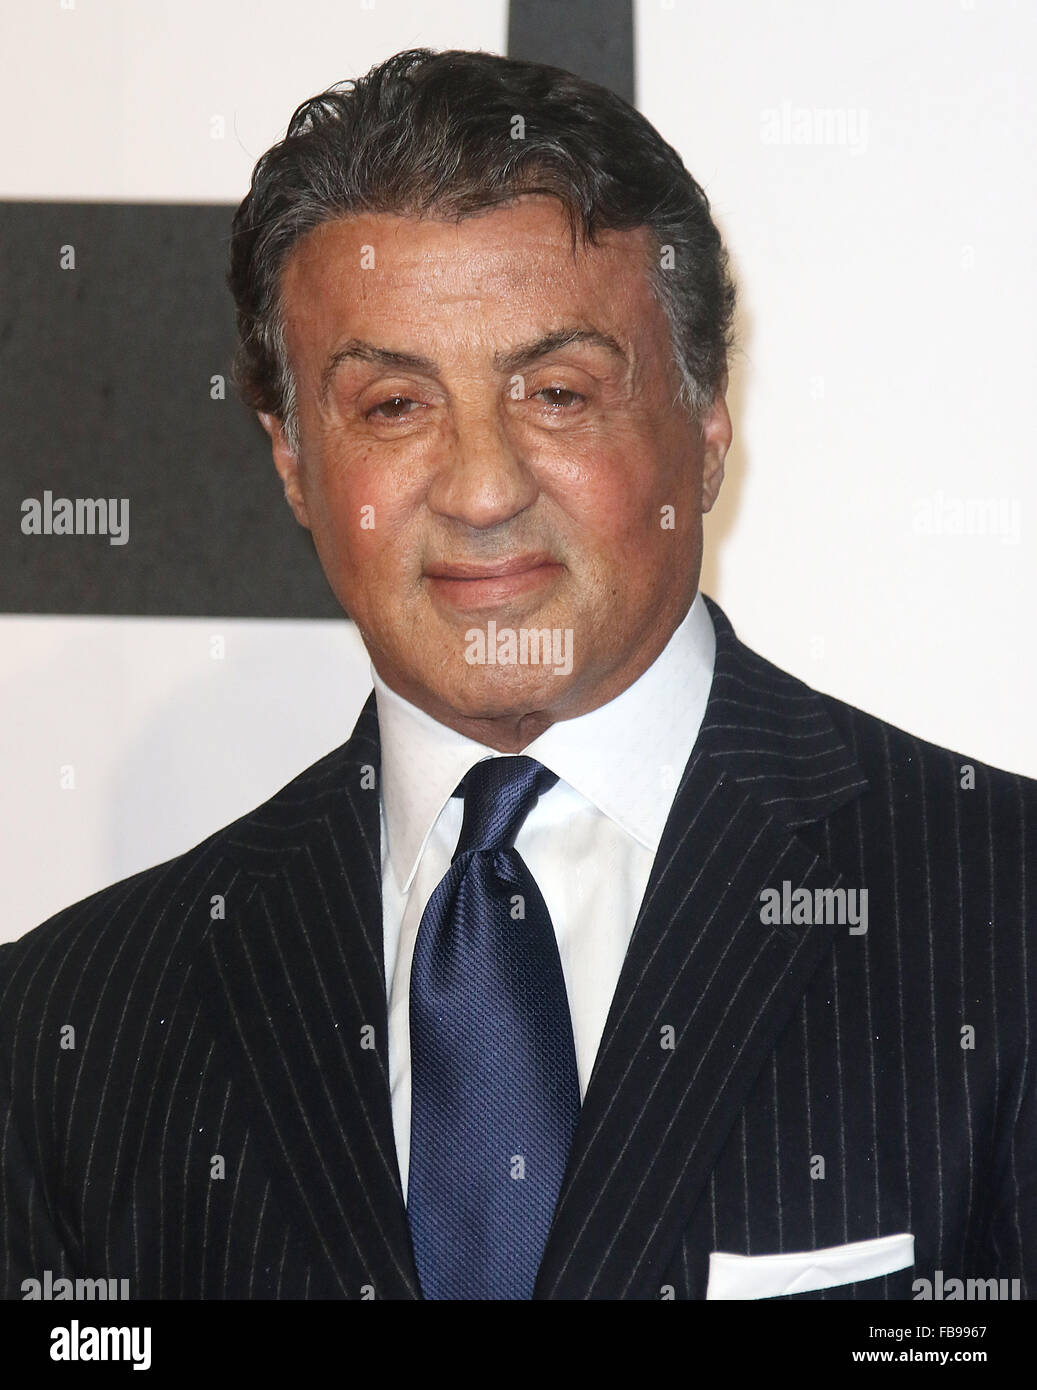 London, UK. 12th January, 2016. Sylvester Stallone attending 'Creed' European Premiere at Empire Cinema, - Stock Image